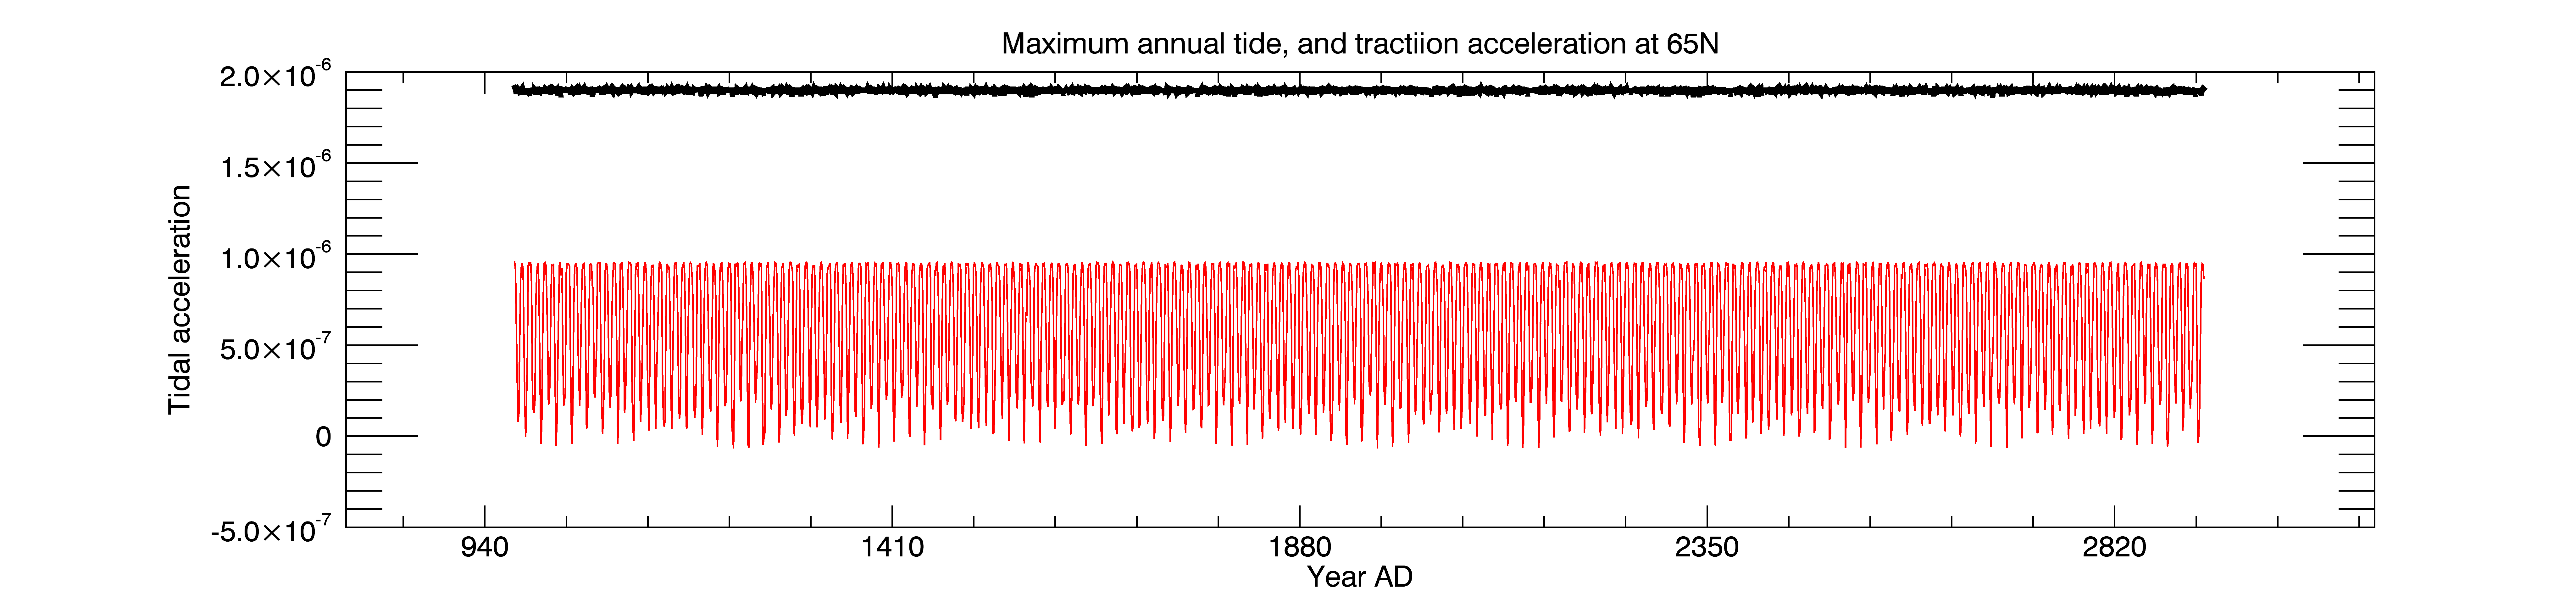 Maximum annual tides and their tractional force exerted at 65N